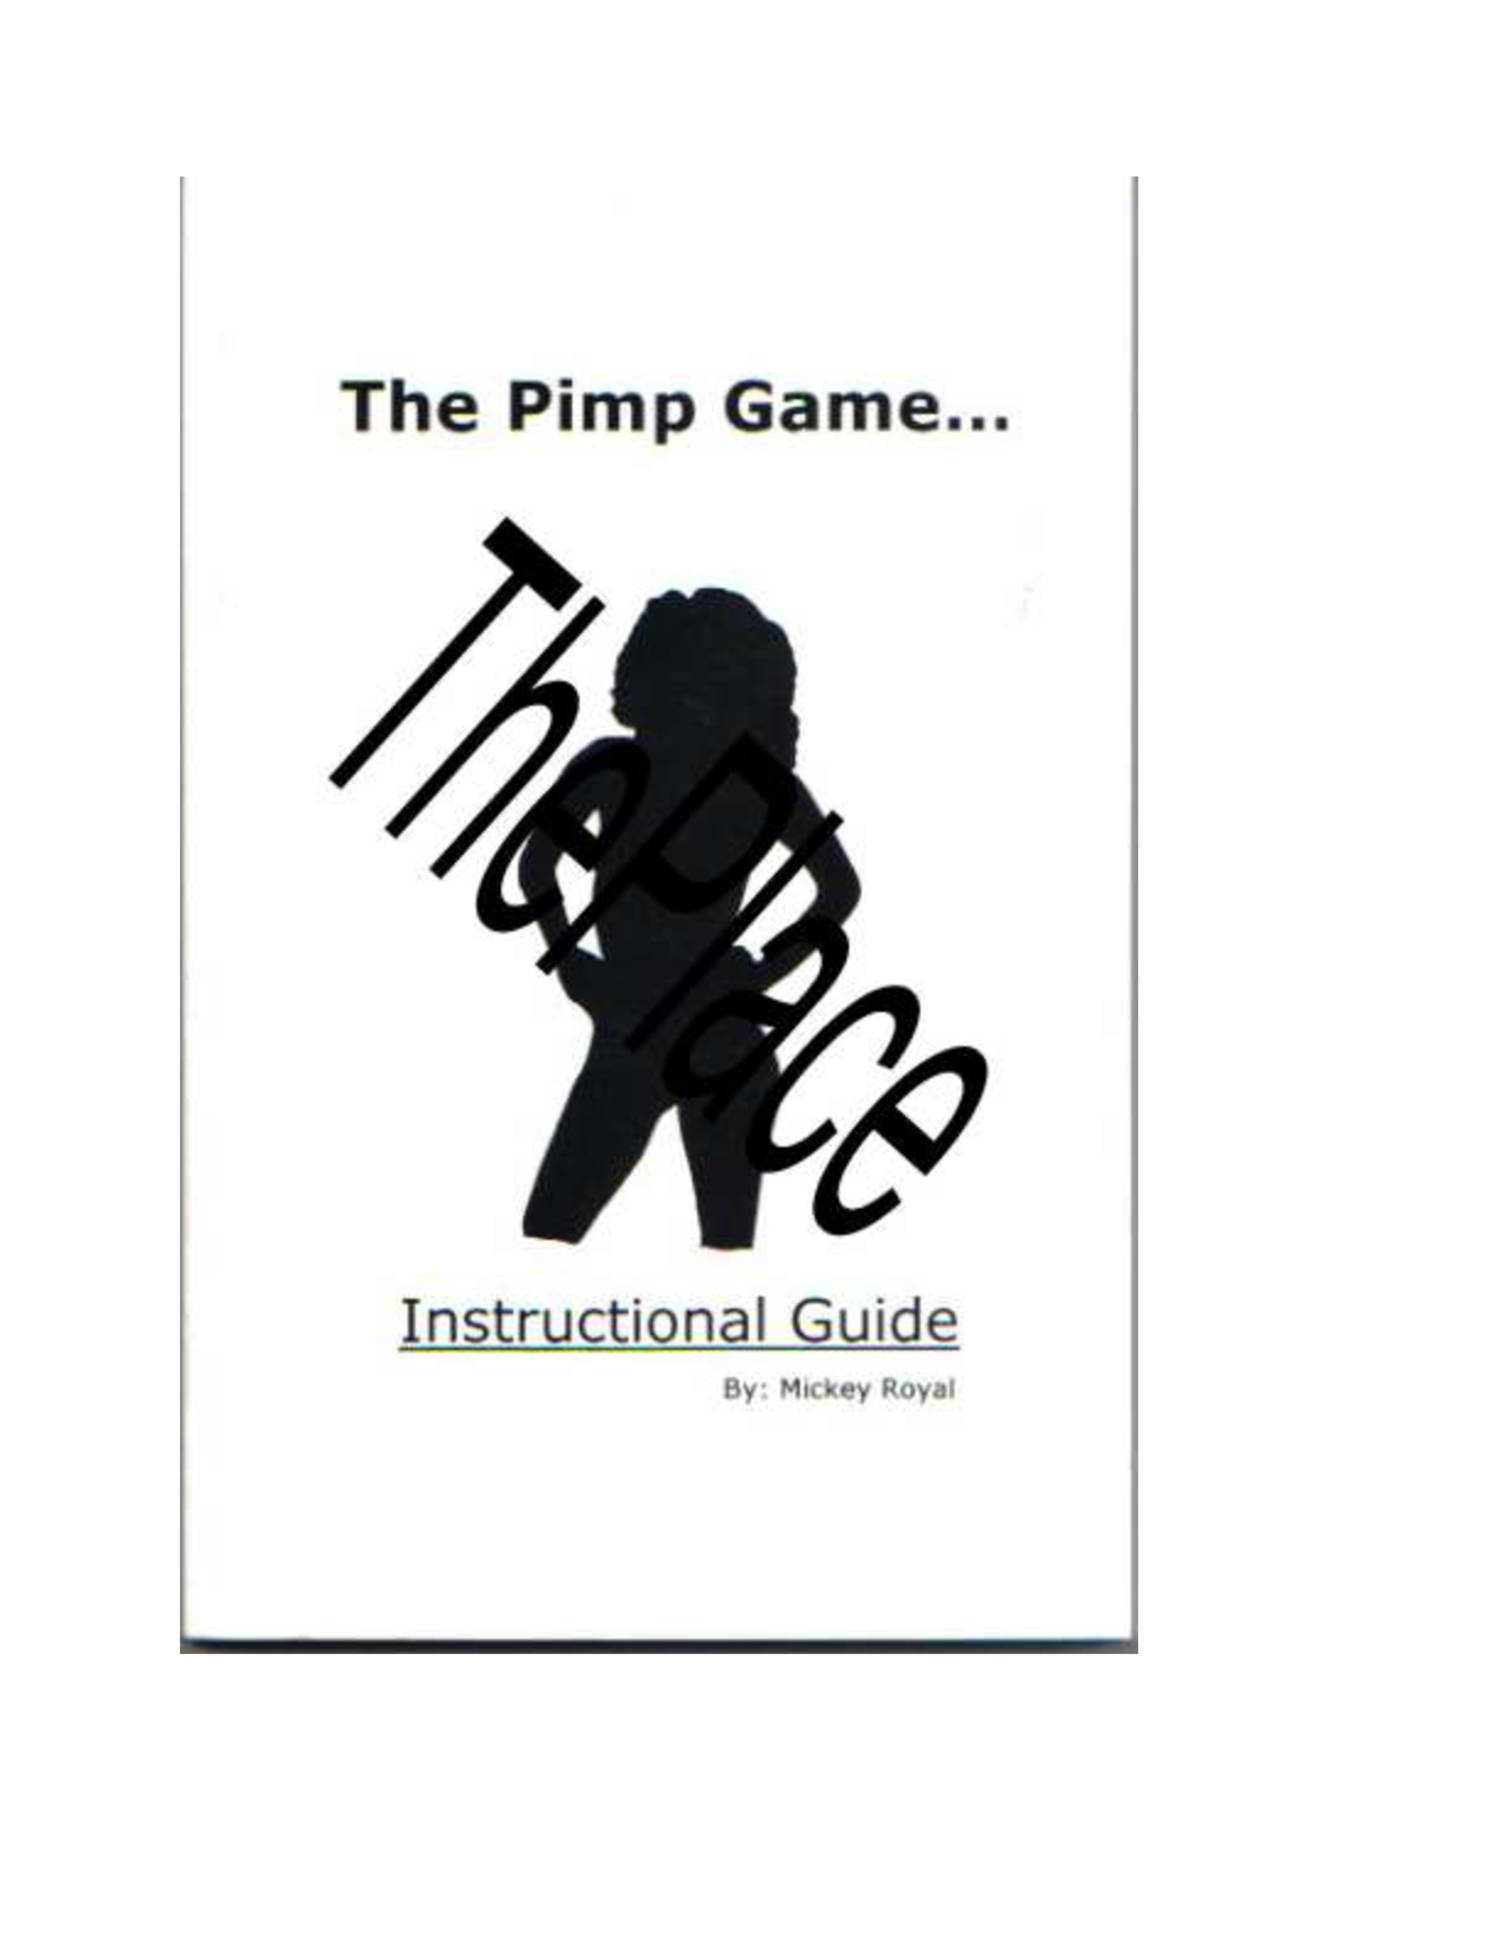 the pimp game instructional guide